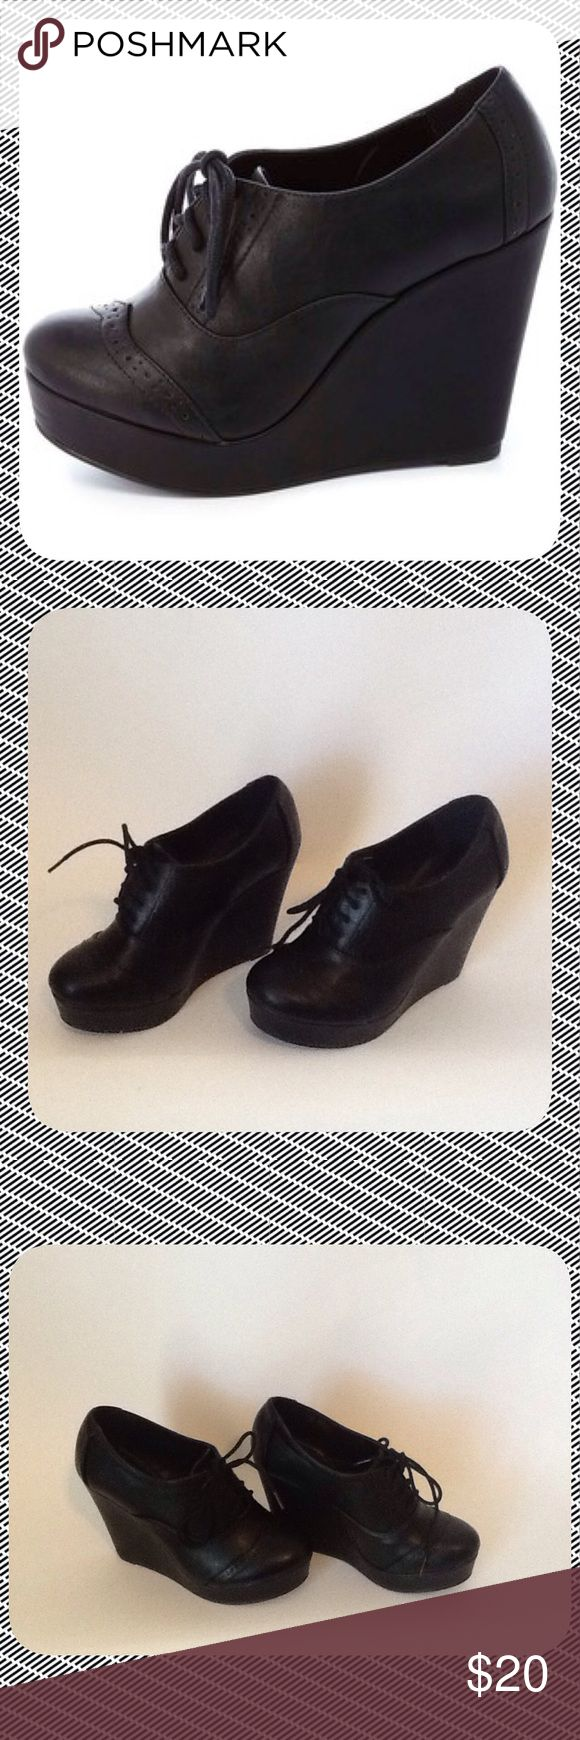 Charlotte Russe Black Oxford Wedges These shoes have Never been Worn!!! They don't come with a Box!!! Reasonable Offers Only!!! Charlotte Russe Shoes Wedges